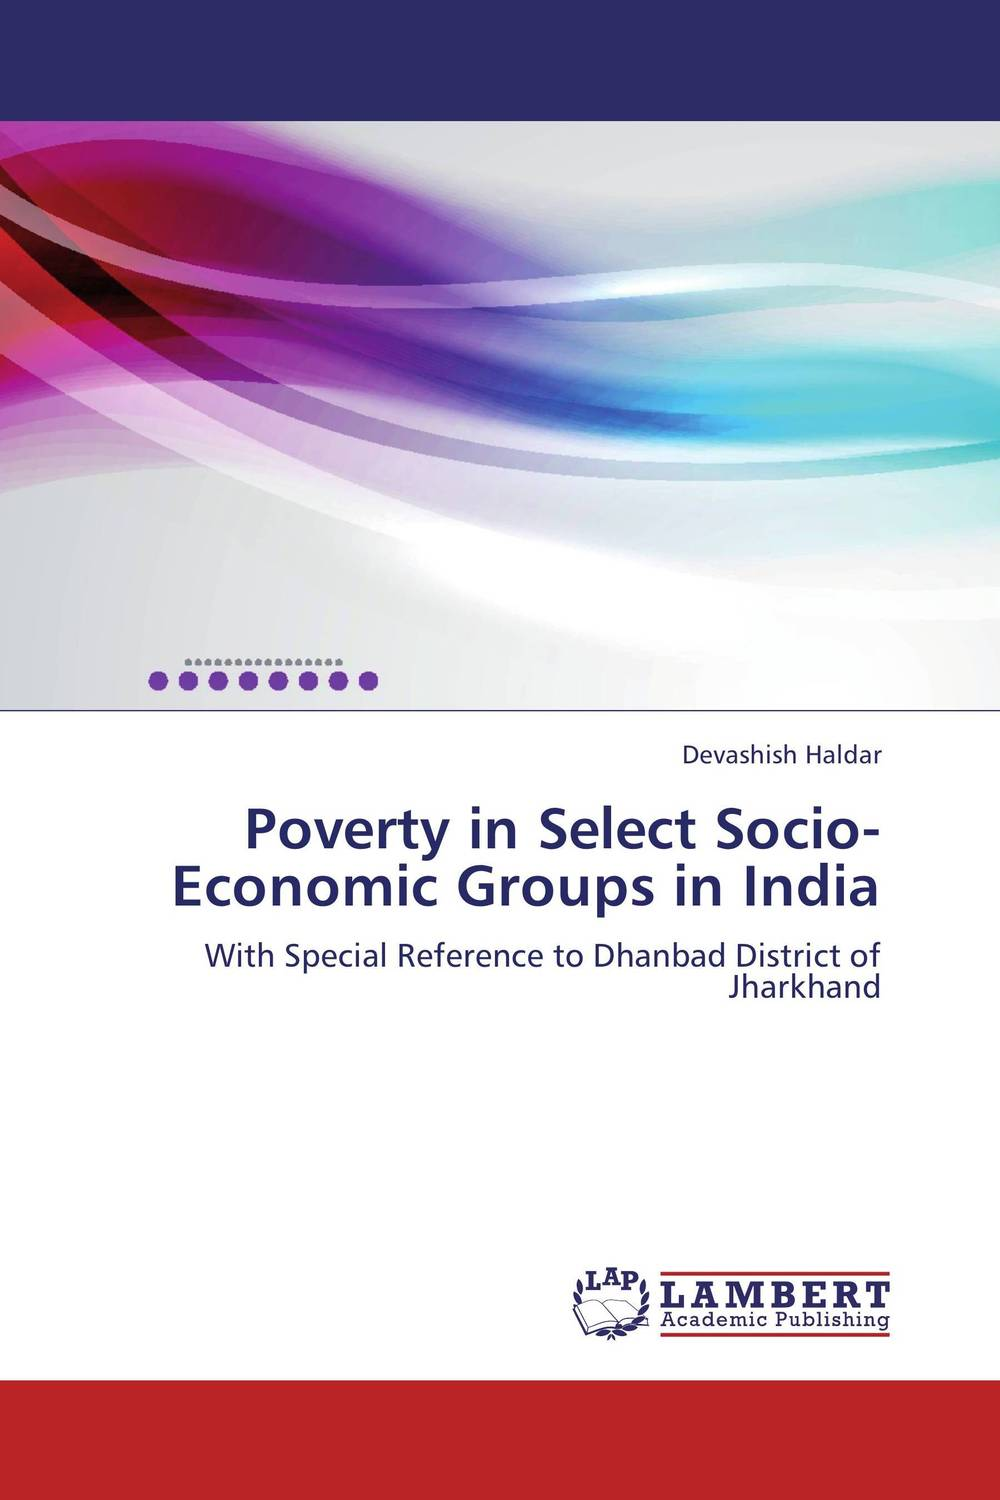 Poverty in Select Socio-Economic Groups in India bir pal singh social inequality and exclusion of scheduled tribes in india